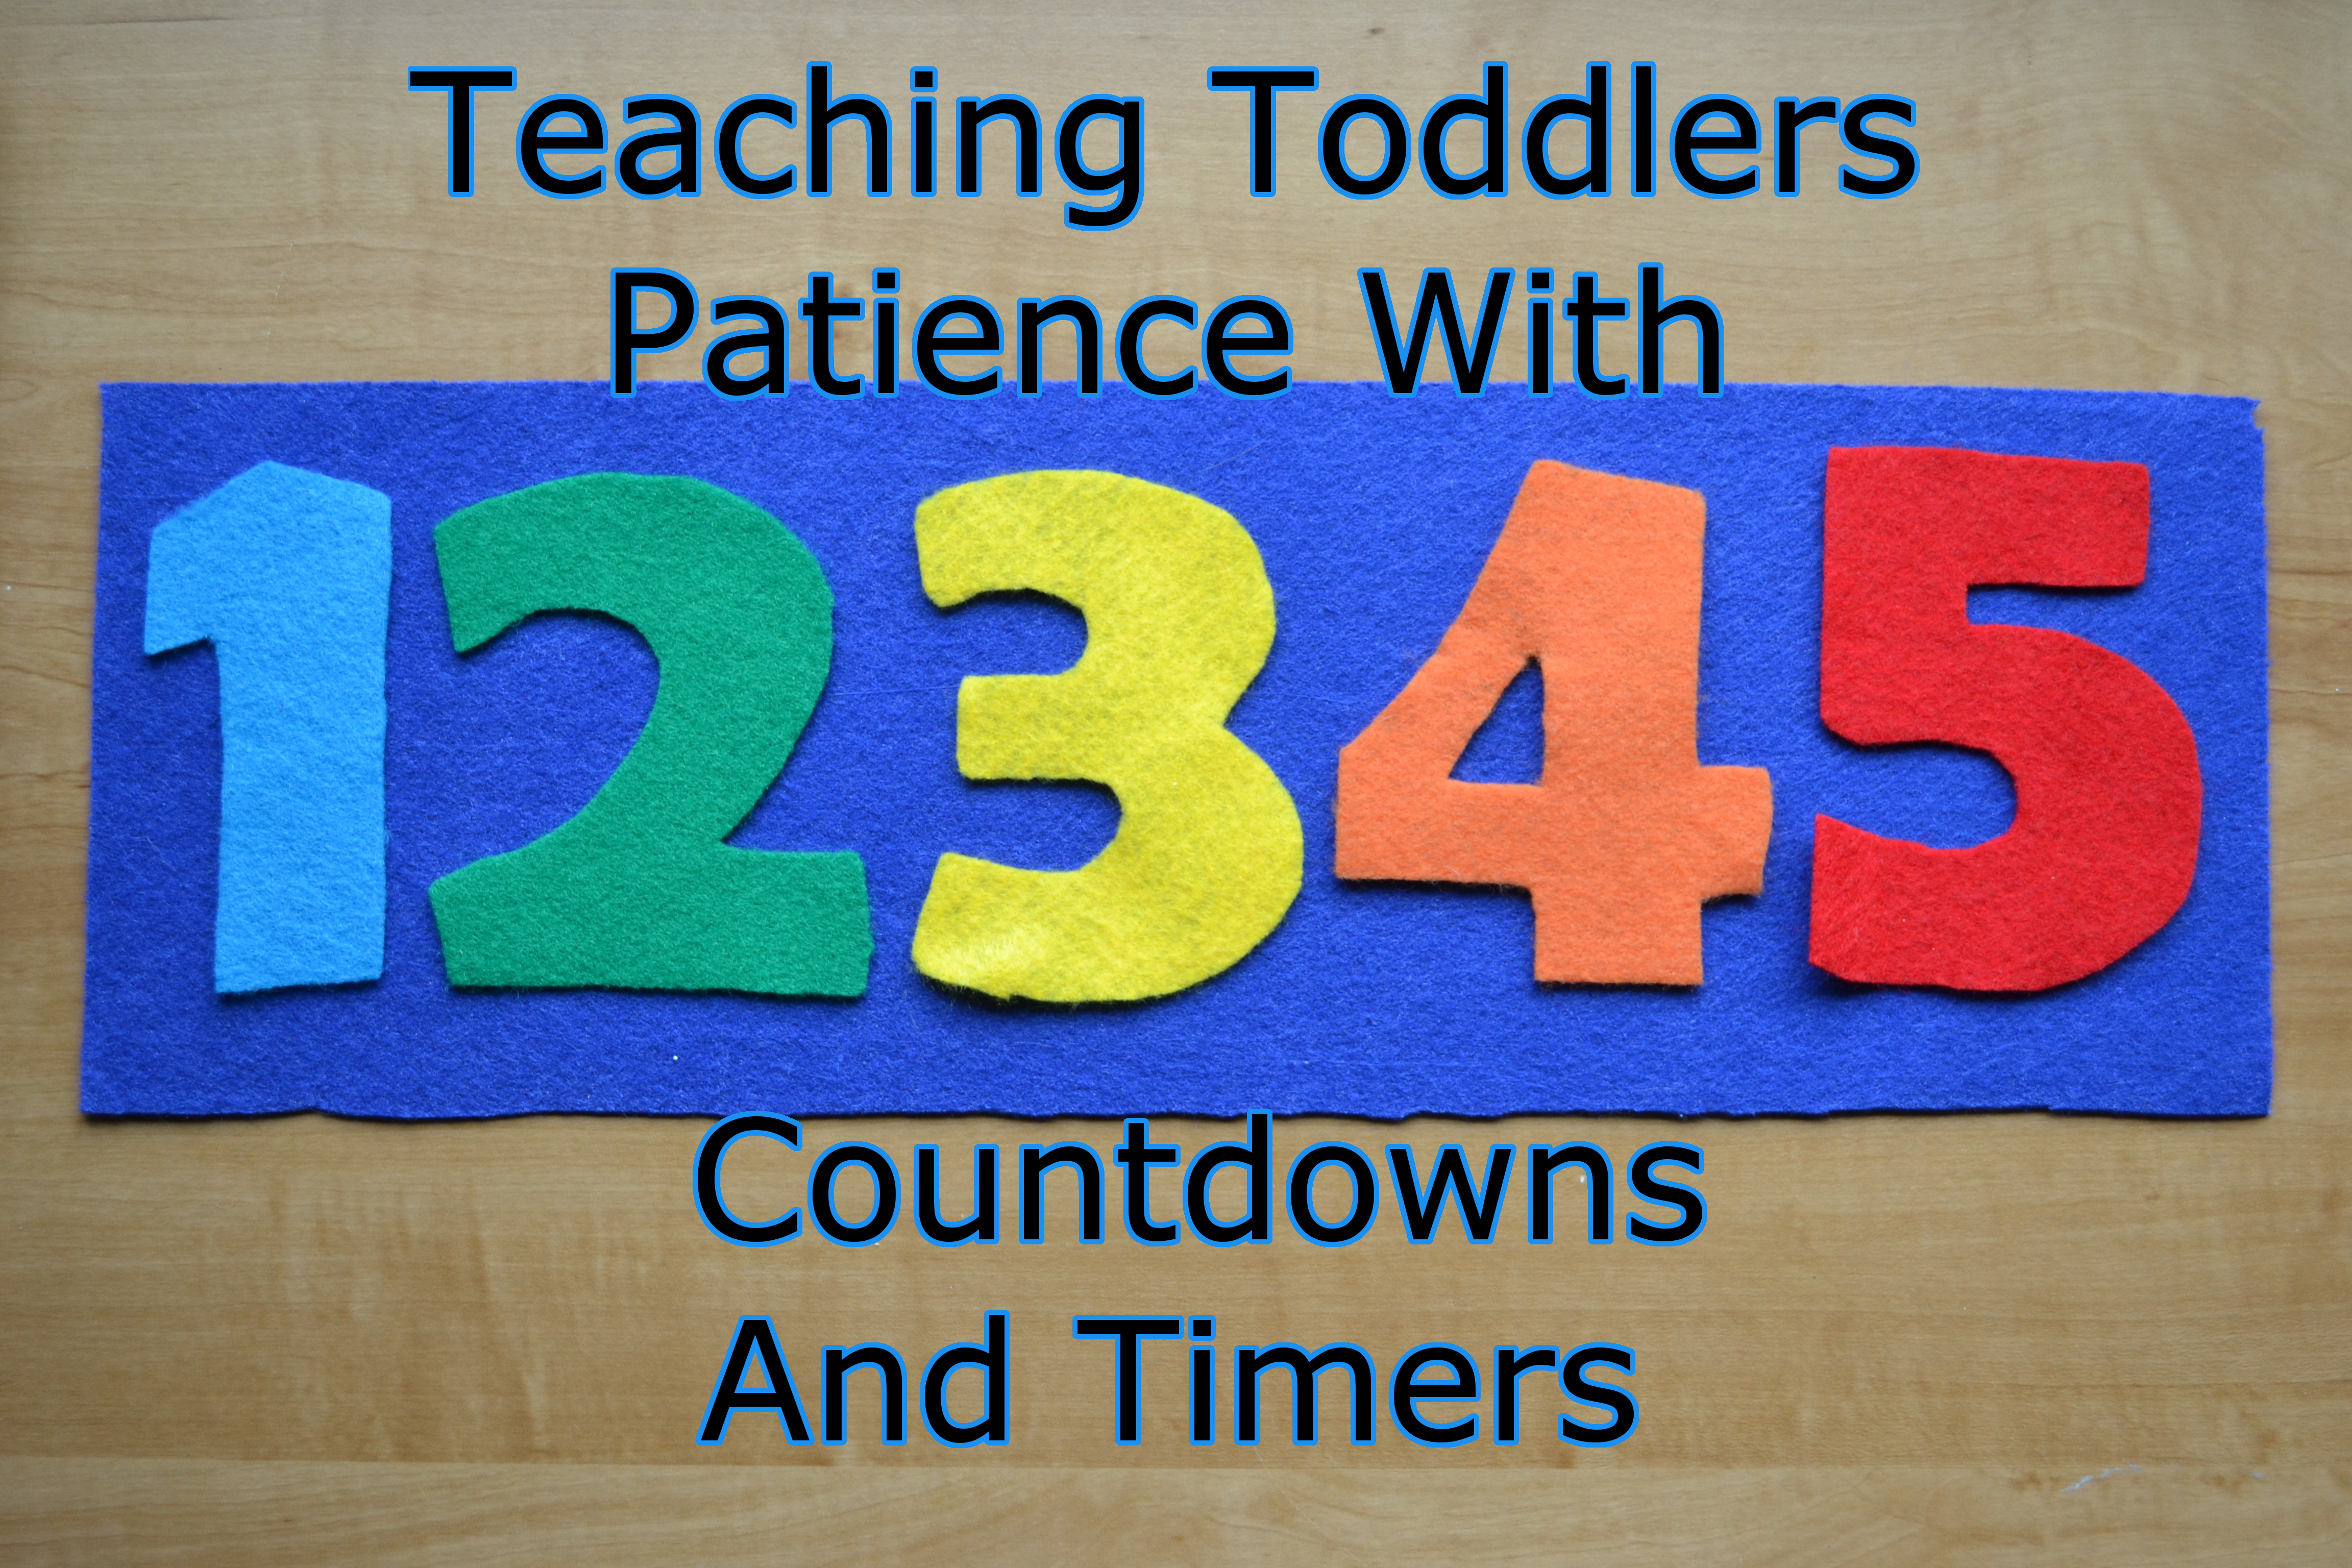 Teaching Toddlers Patience With Timers And Countdowns